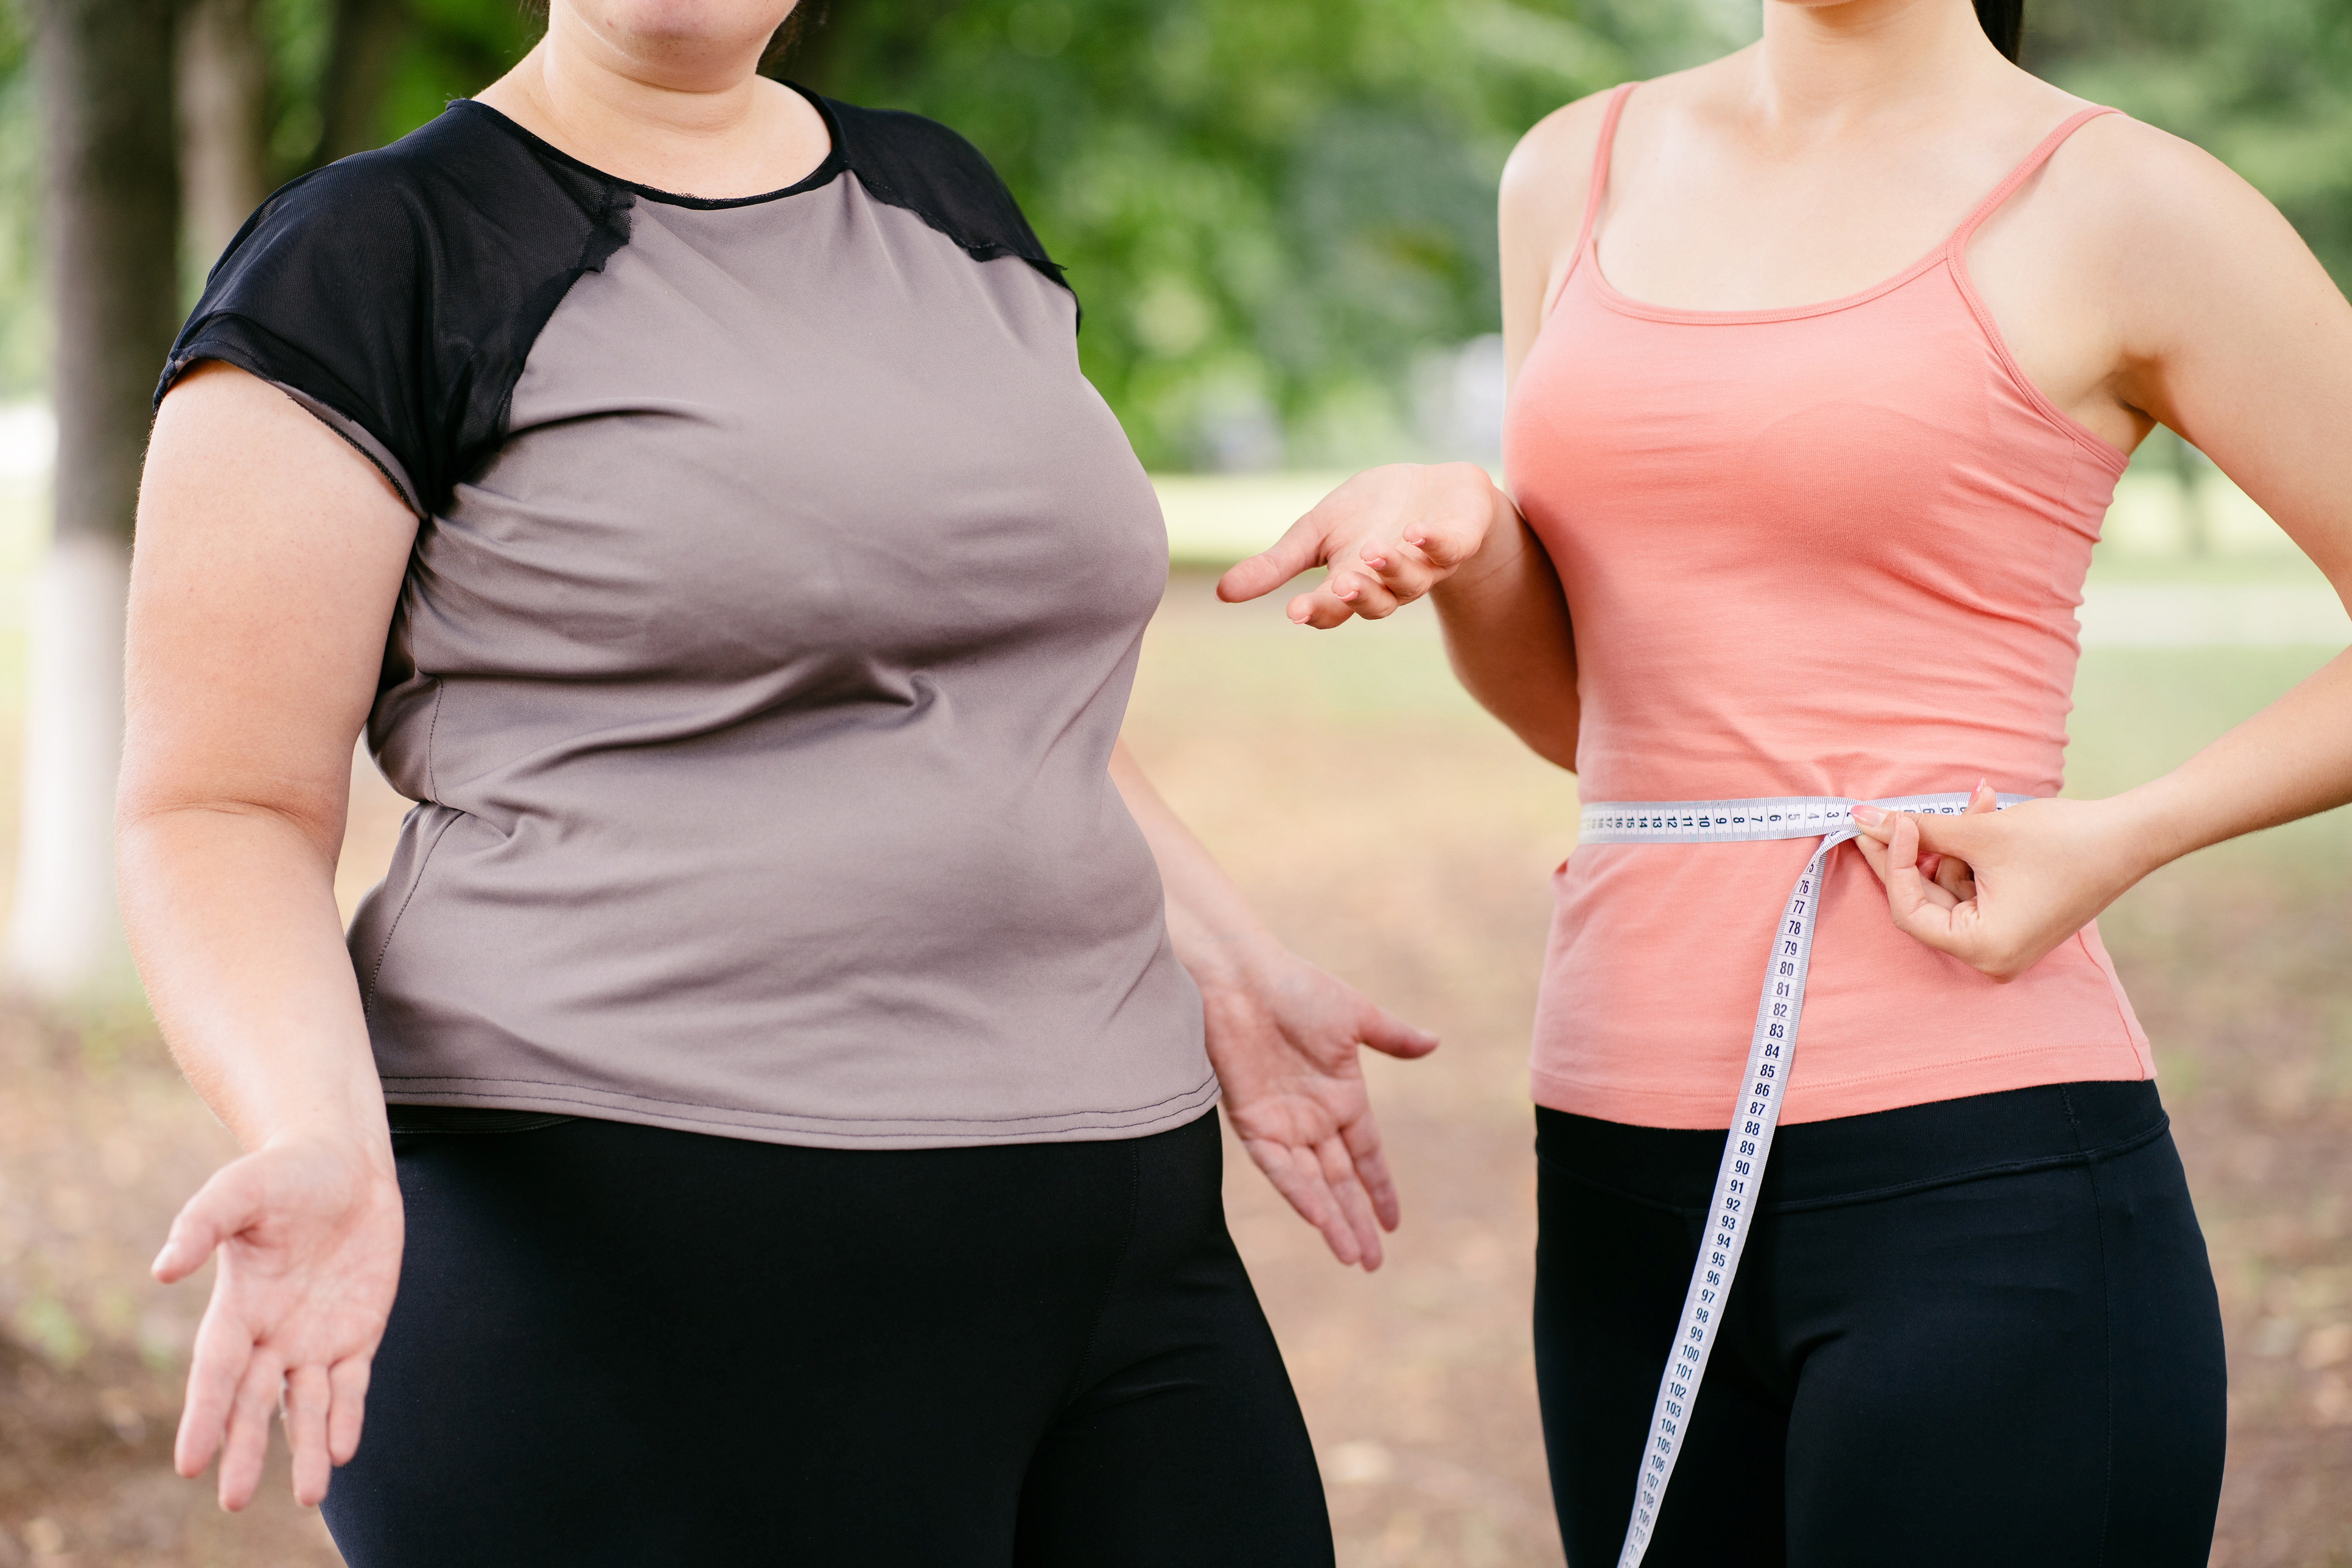 Online Dating: Curvy Or Fat?